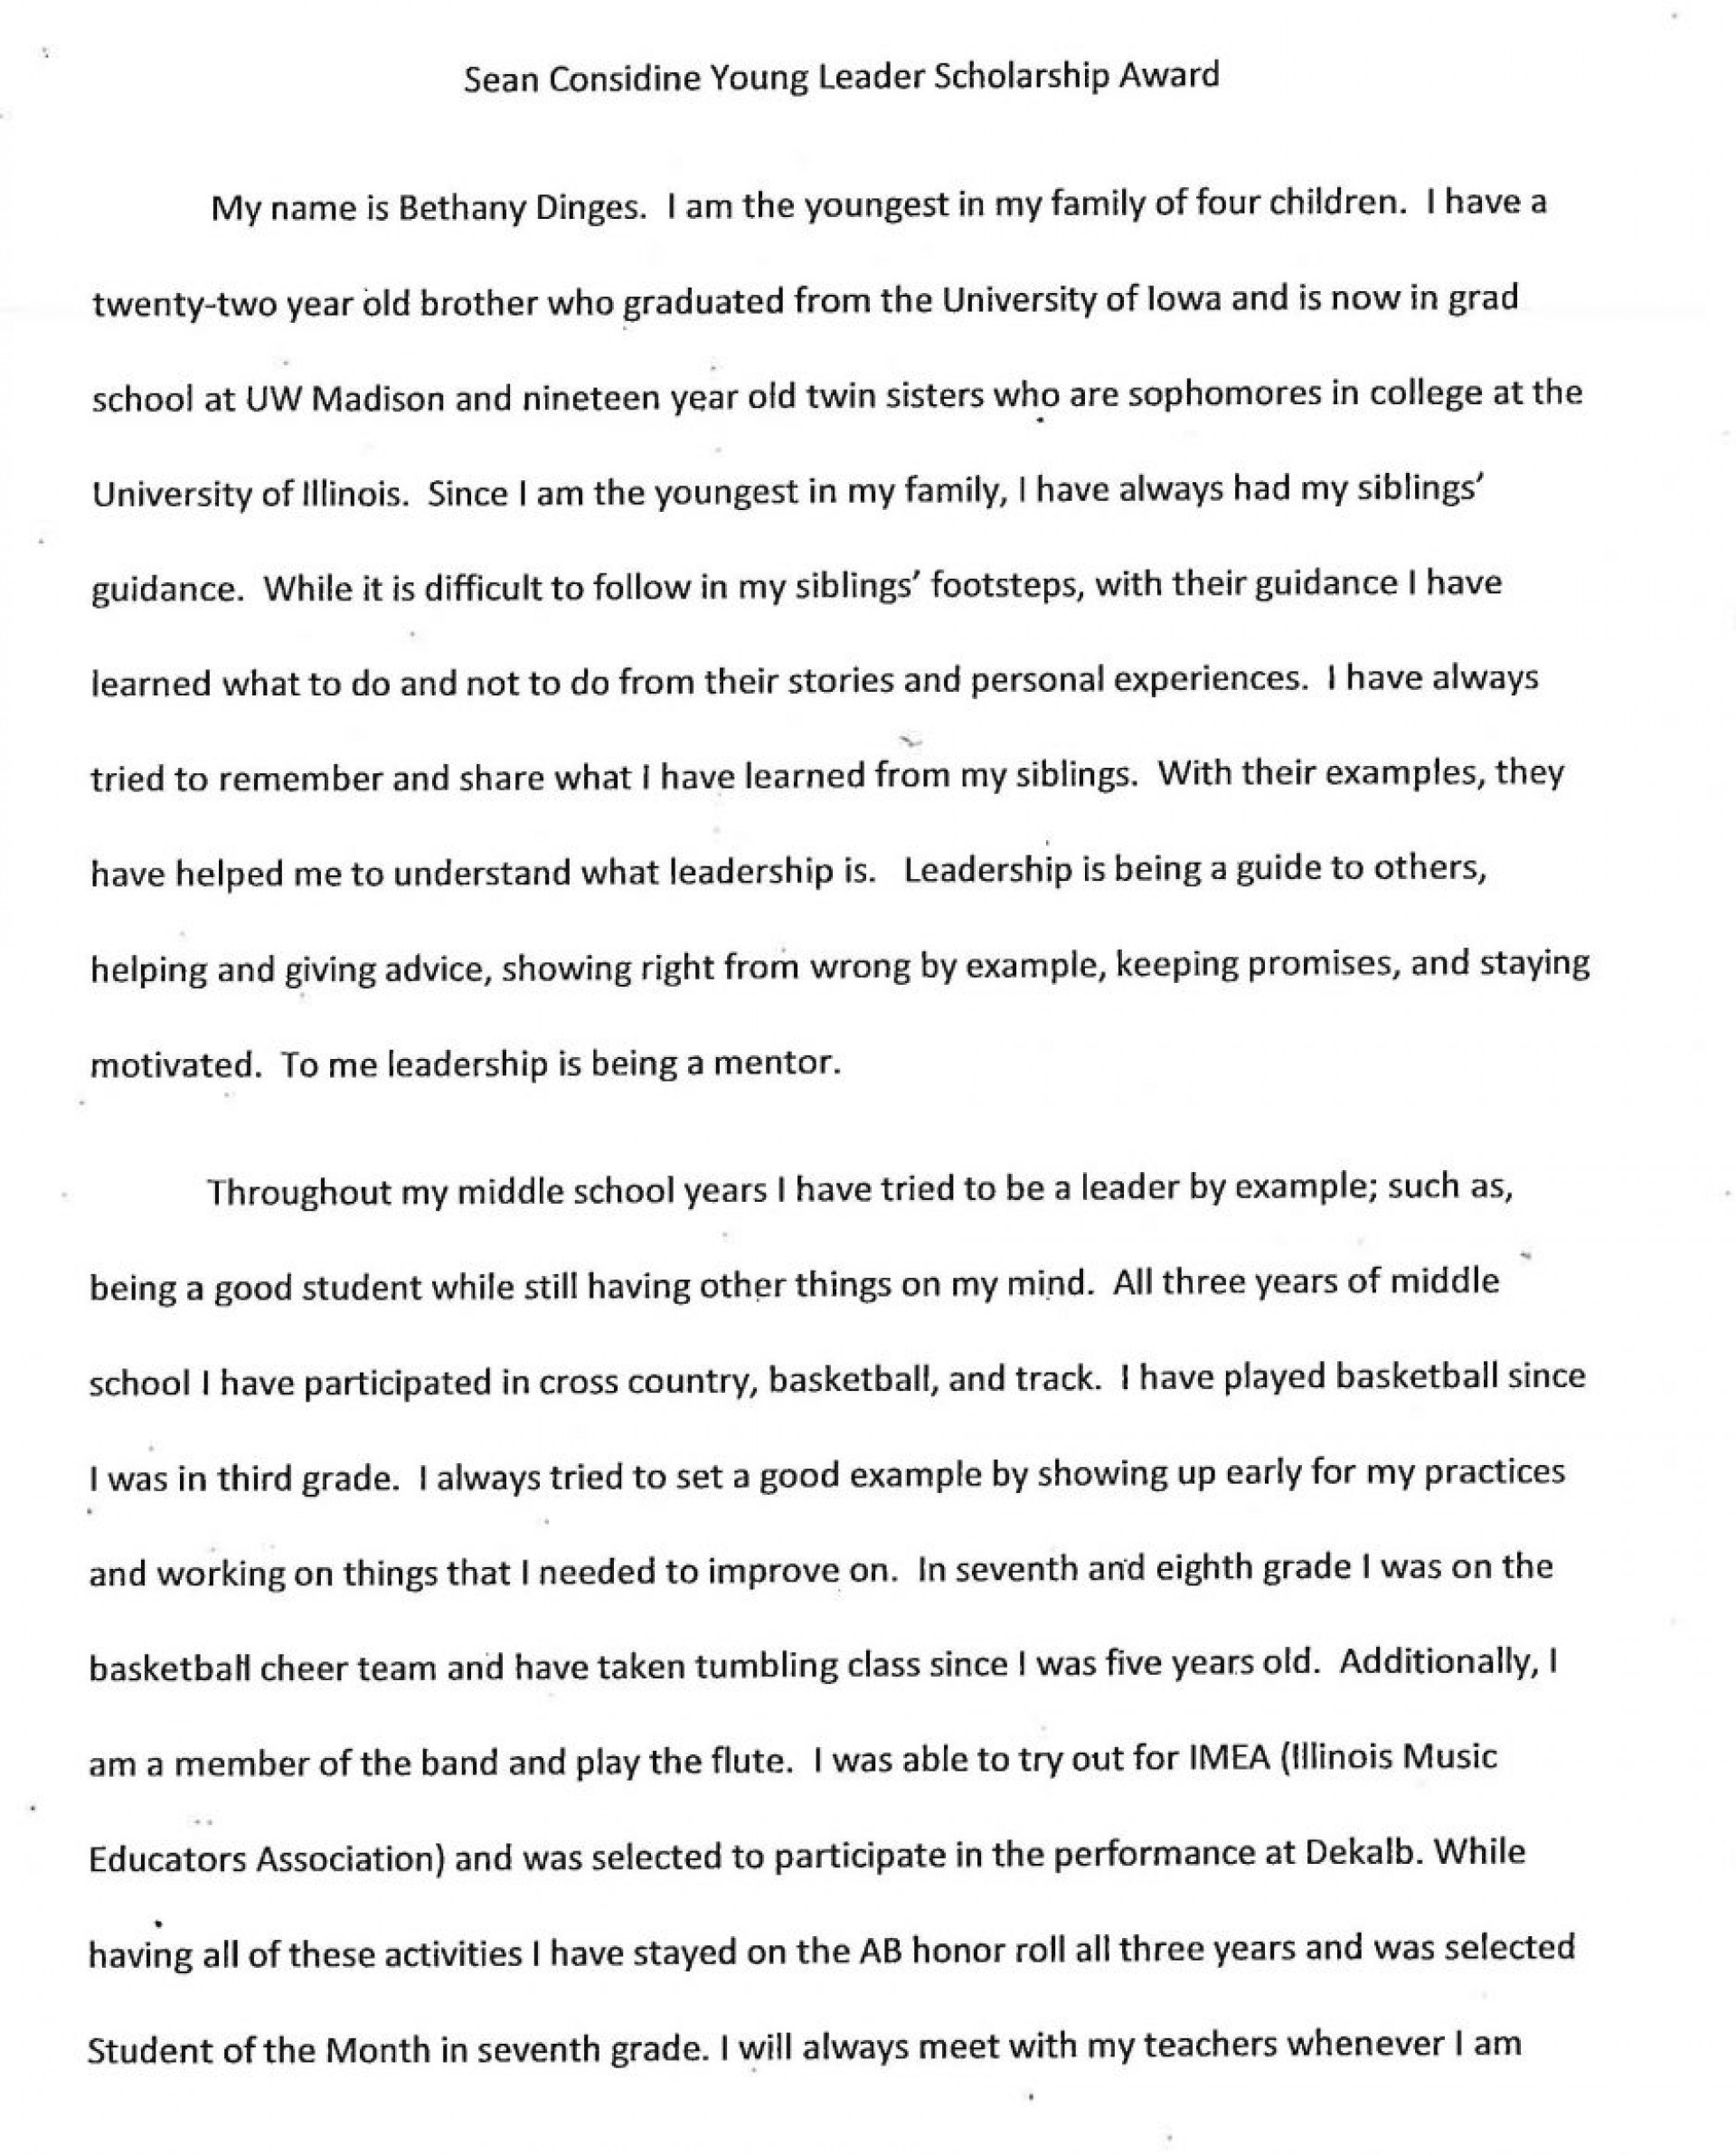 007 Studentuncil Essay Ideas Bethanyletter Page For Treasurer Elections Good Elementary School Election Goals President Examples Writing An Sample Persuasive 3rd Graders Secretary 936x1162 Phenomenal Student Council Rubric Topics 1920